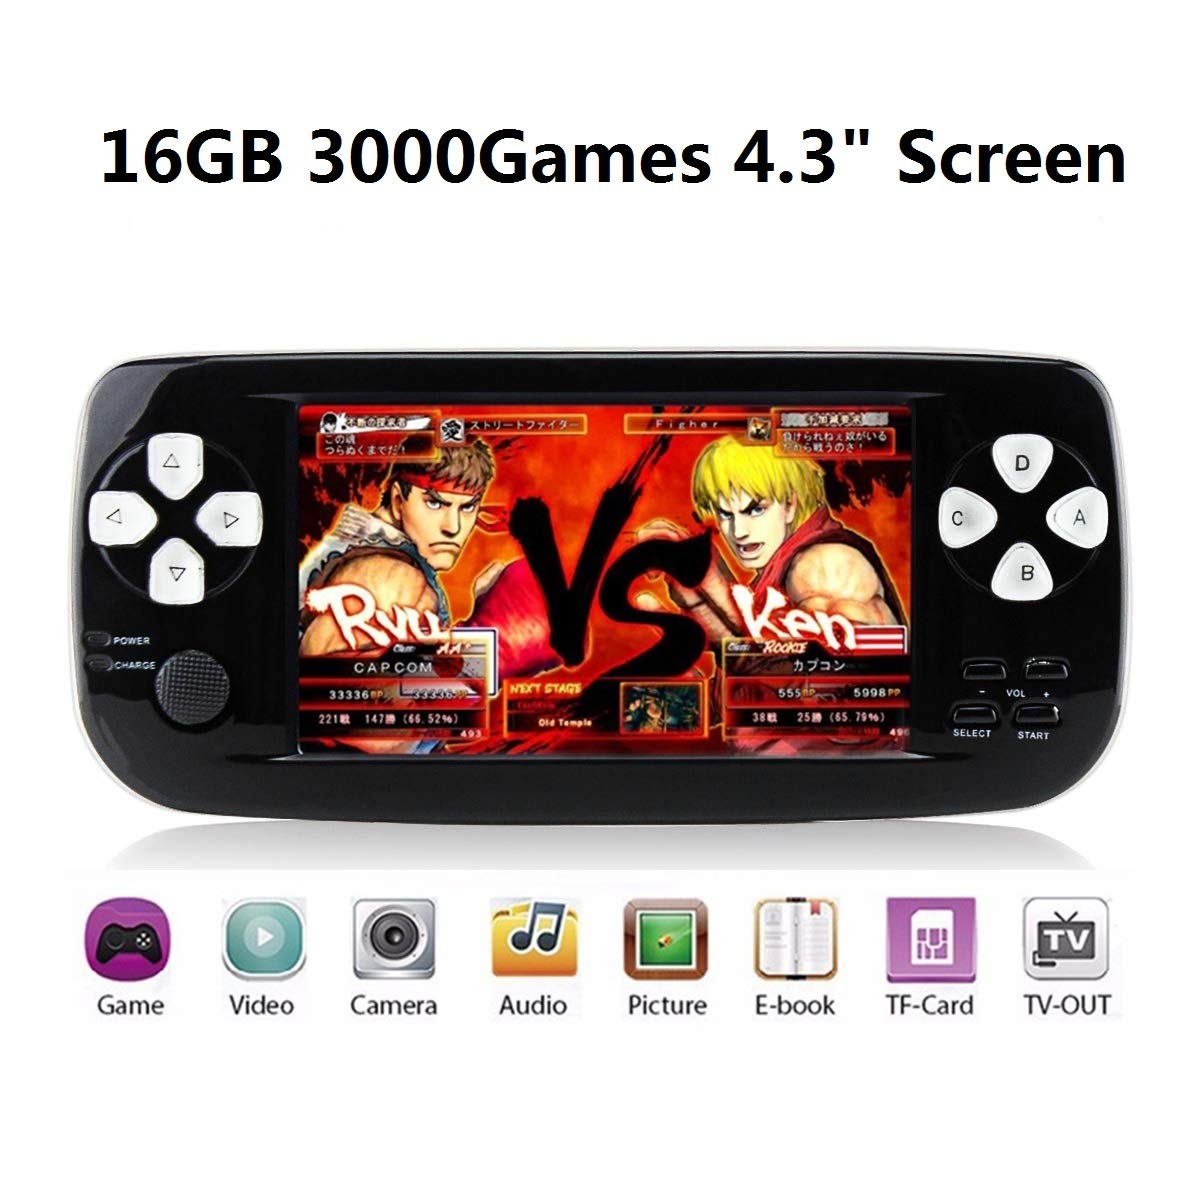 Anbernic Handheld Game Console, 16GB 3000 Retro Classic Game Console Pap-KIII , Portable Video Game Console Support GBA / NES / SFC / Sega / NEOGEO , Birthday Gift Children - Black